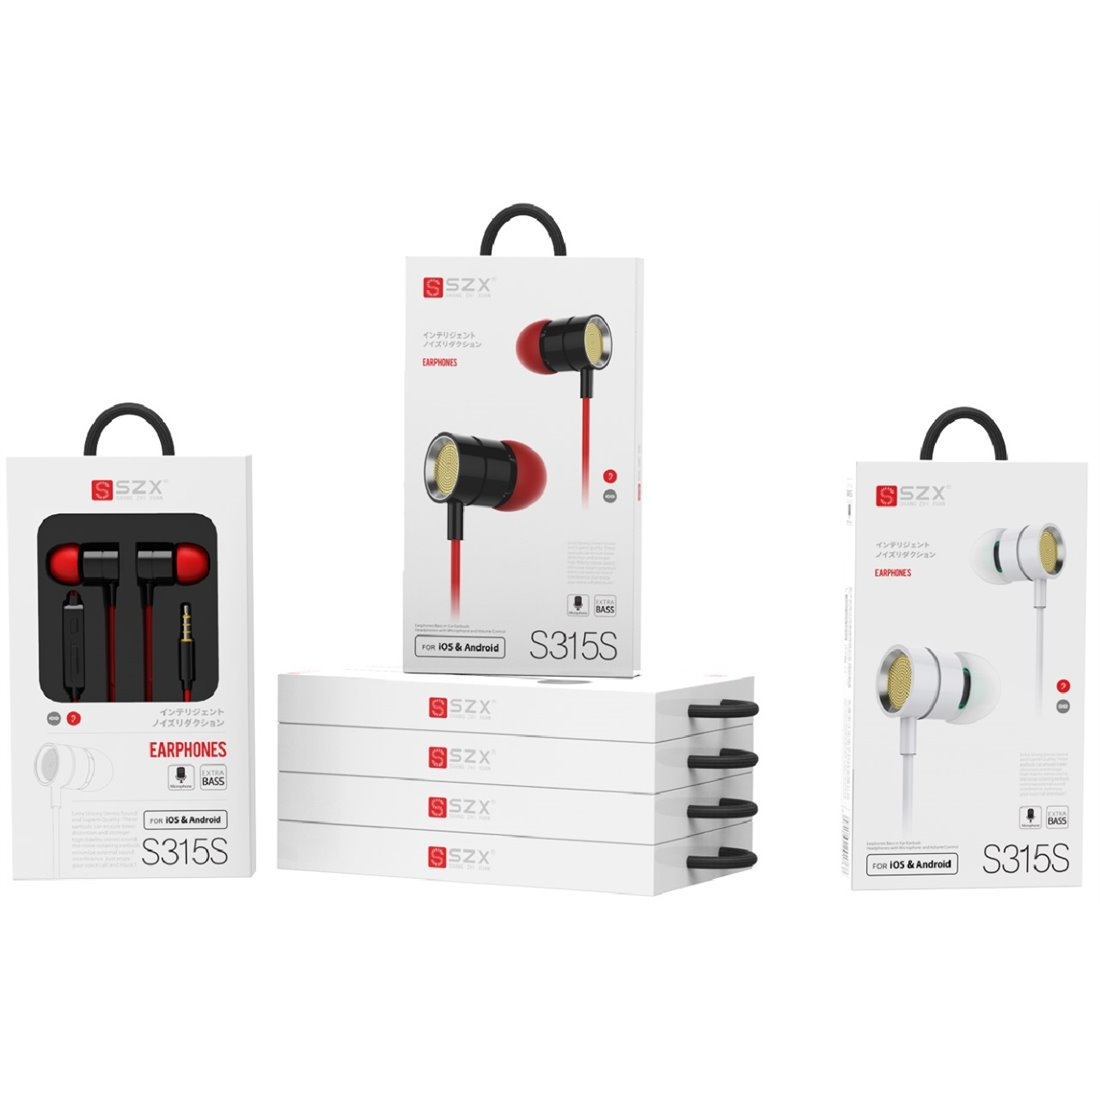 SZX S315S  Earphones Music and calls wit